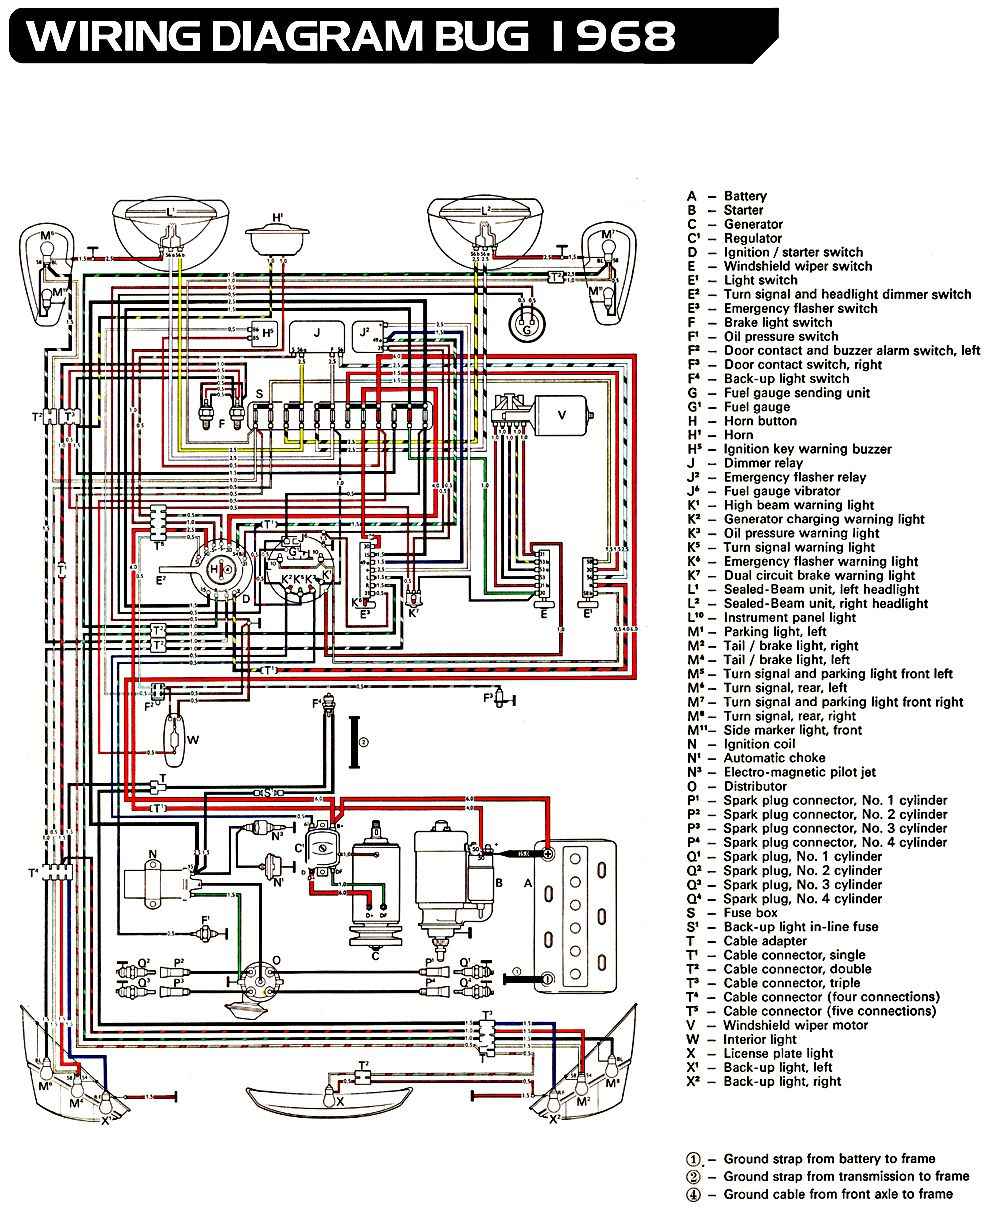 3a1908112d3826270ed5e3be362292bf vw bug ignition wiring diagram 73 vw wiring diagram free vw bug wiring diagram at cos-gaming.co